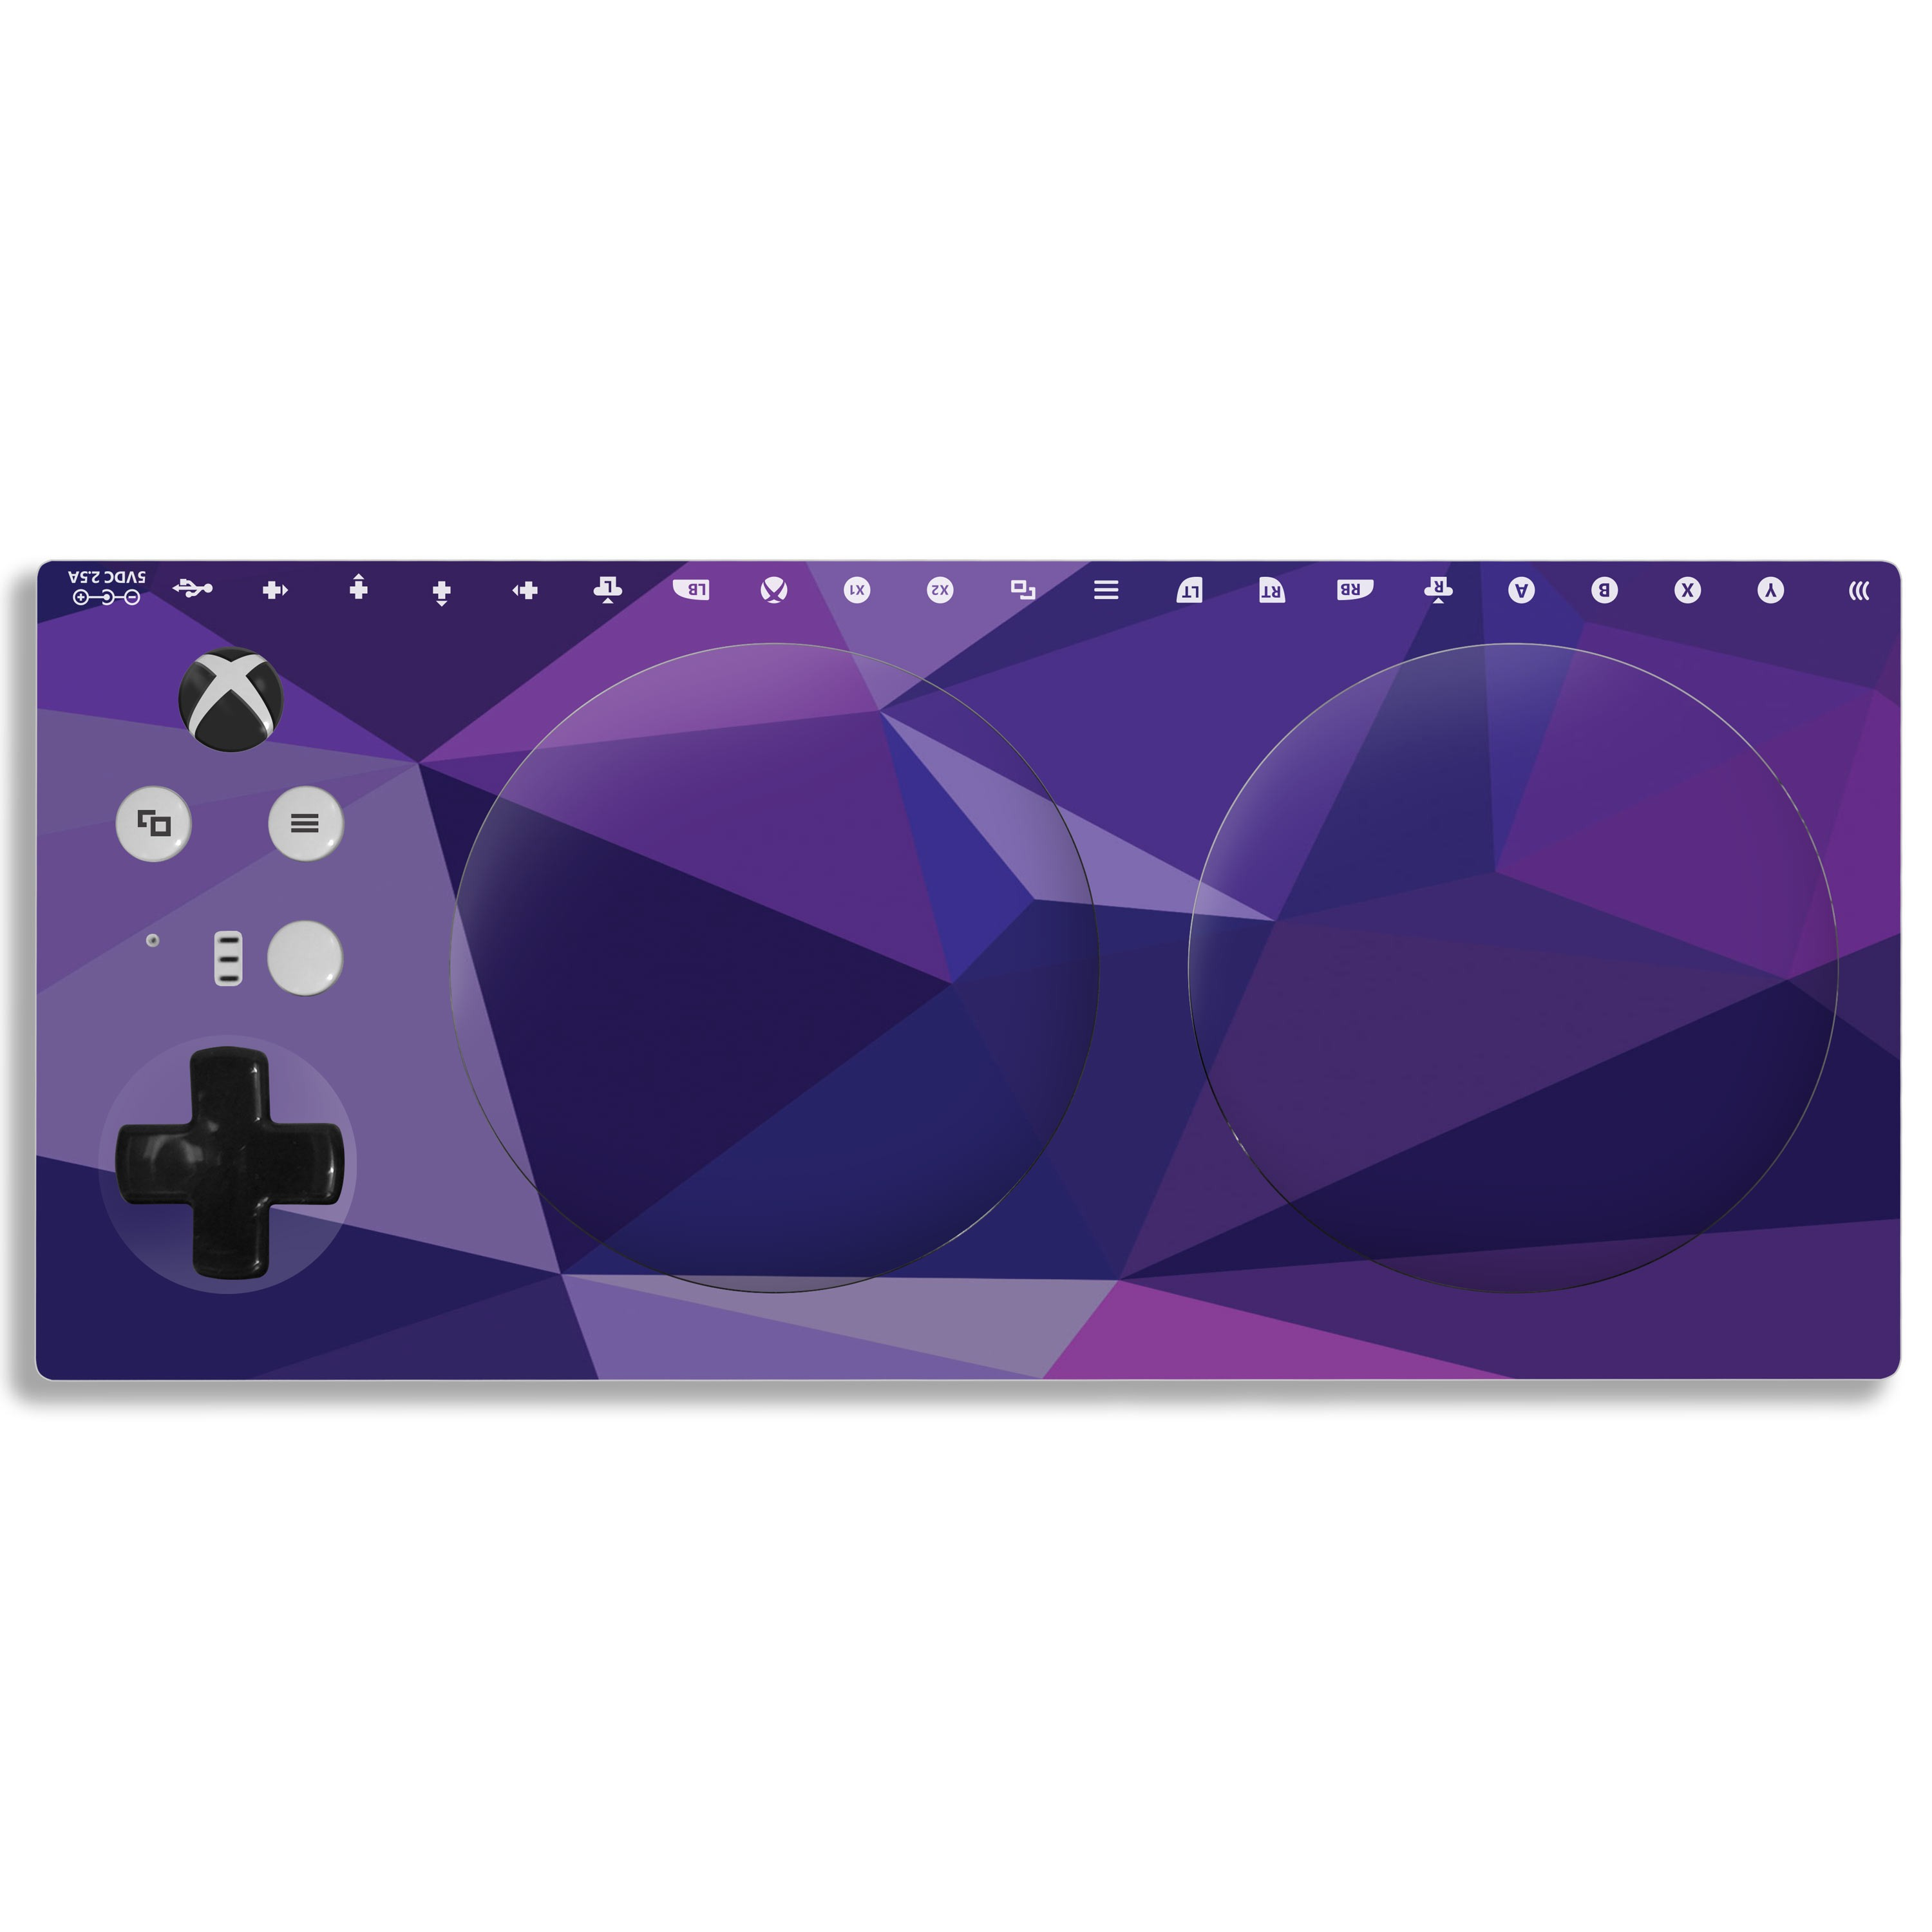 Xbox Adaptive Controller Skin: Purple Poly